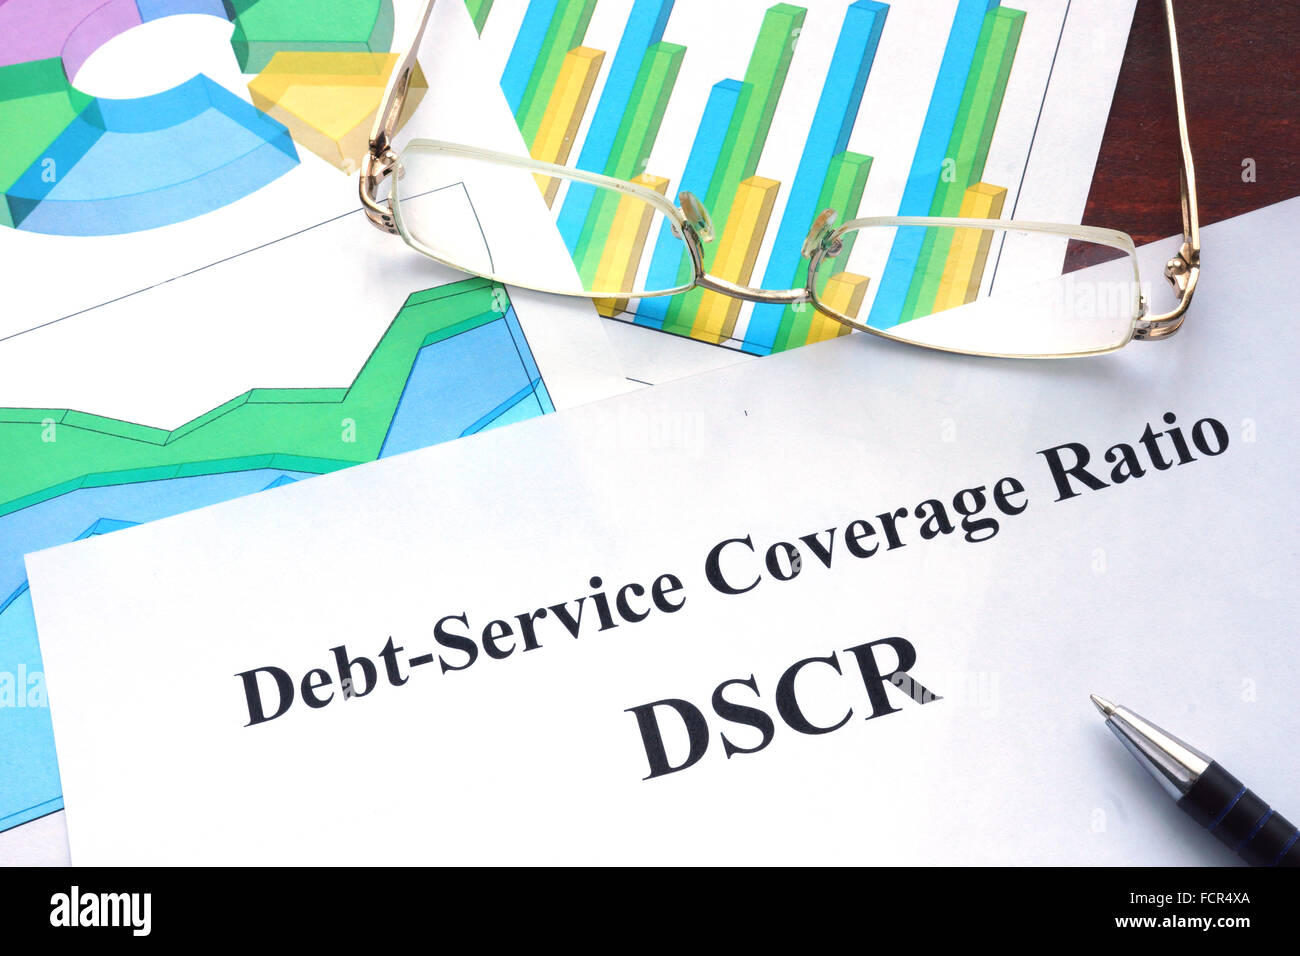 Debt-Service Coverage Ratio – DSCR form on a table. Business concept. - Stock Image